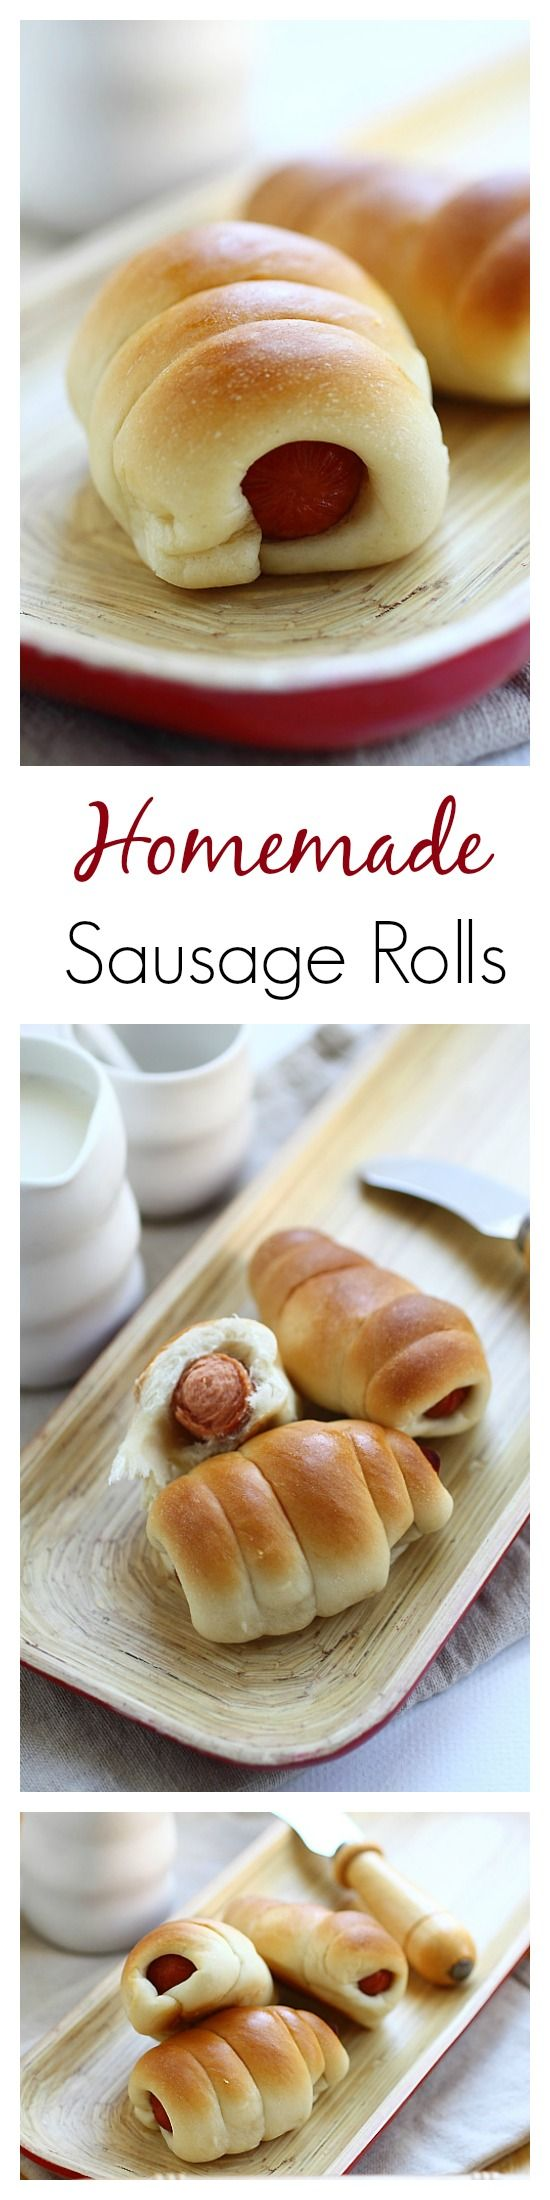 Homemade Sausage Rolls. So soft, so yummy, and wrapped with your favorite sausage. Get the recipe now   rasamalaysia.com